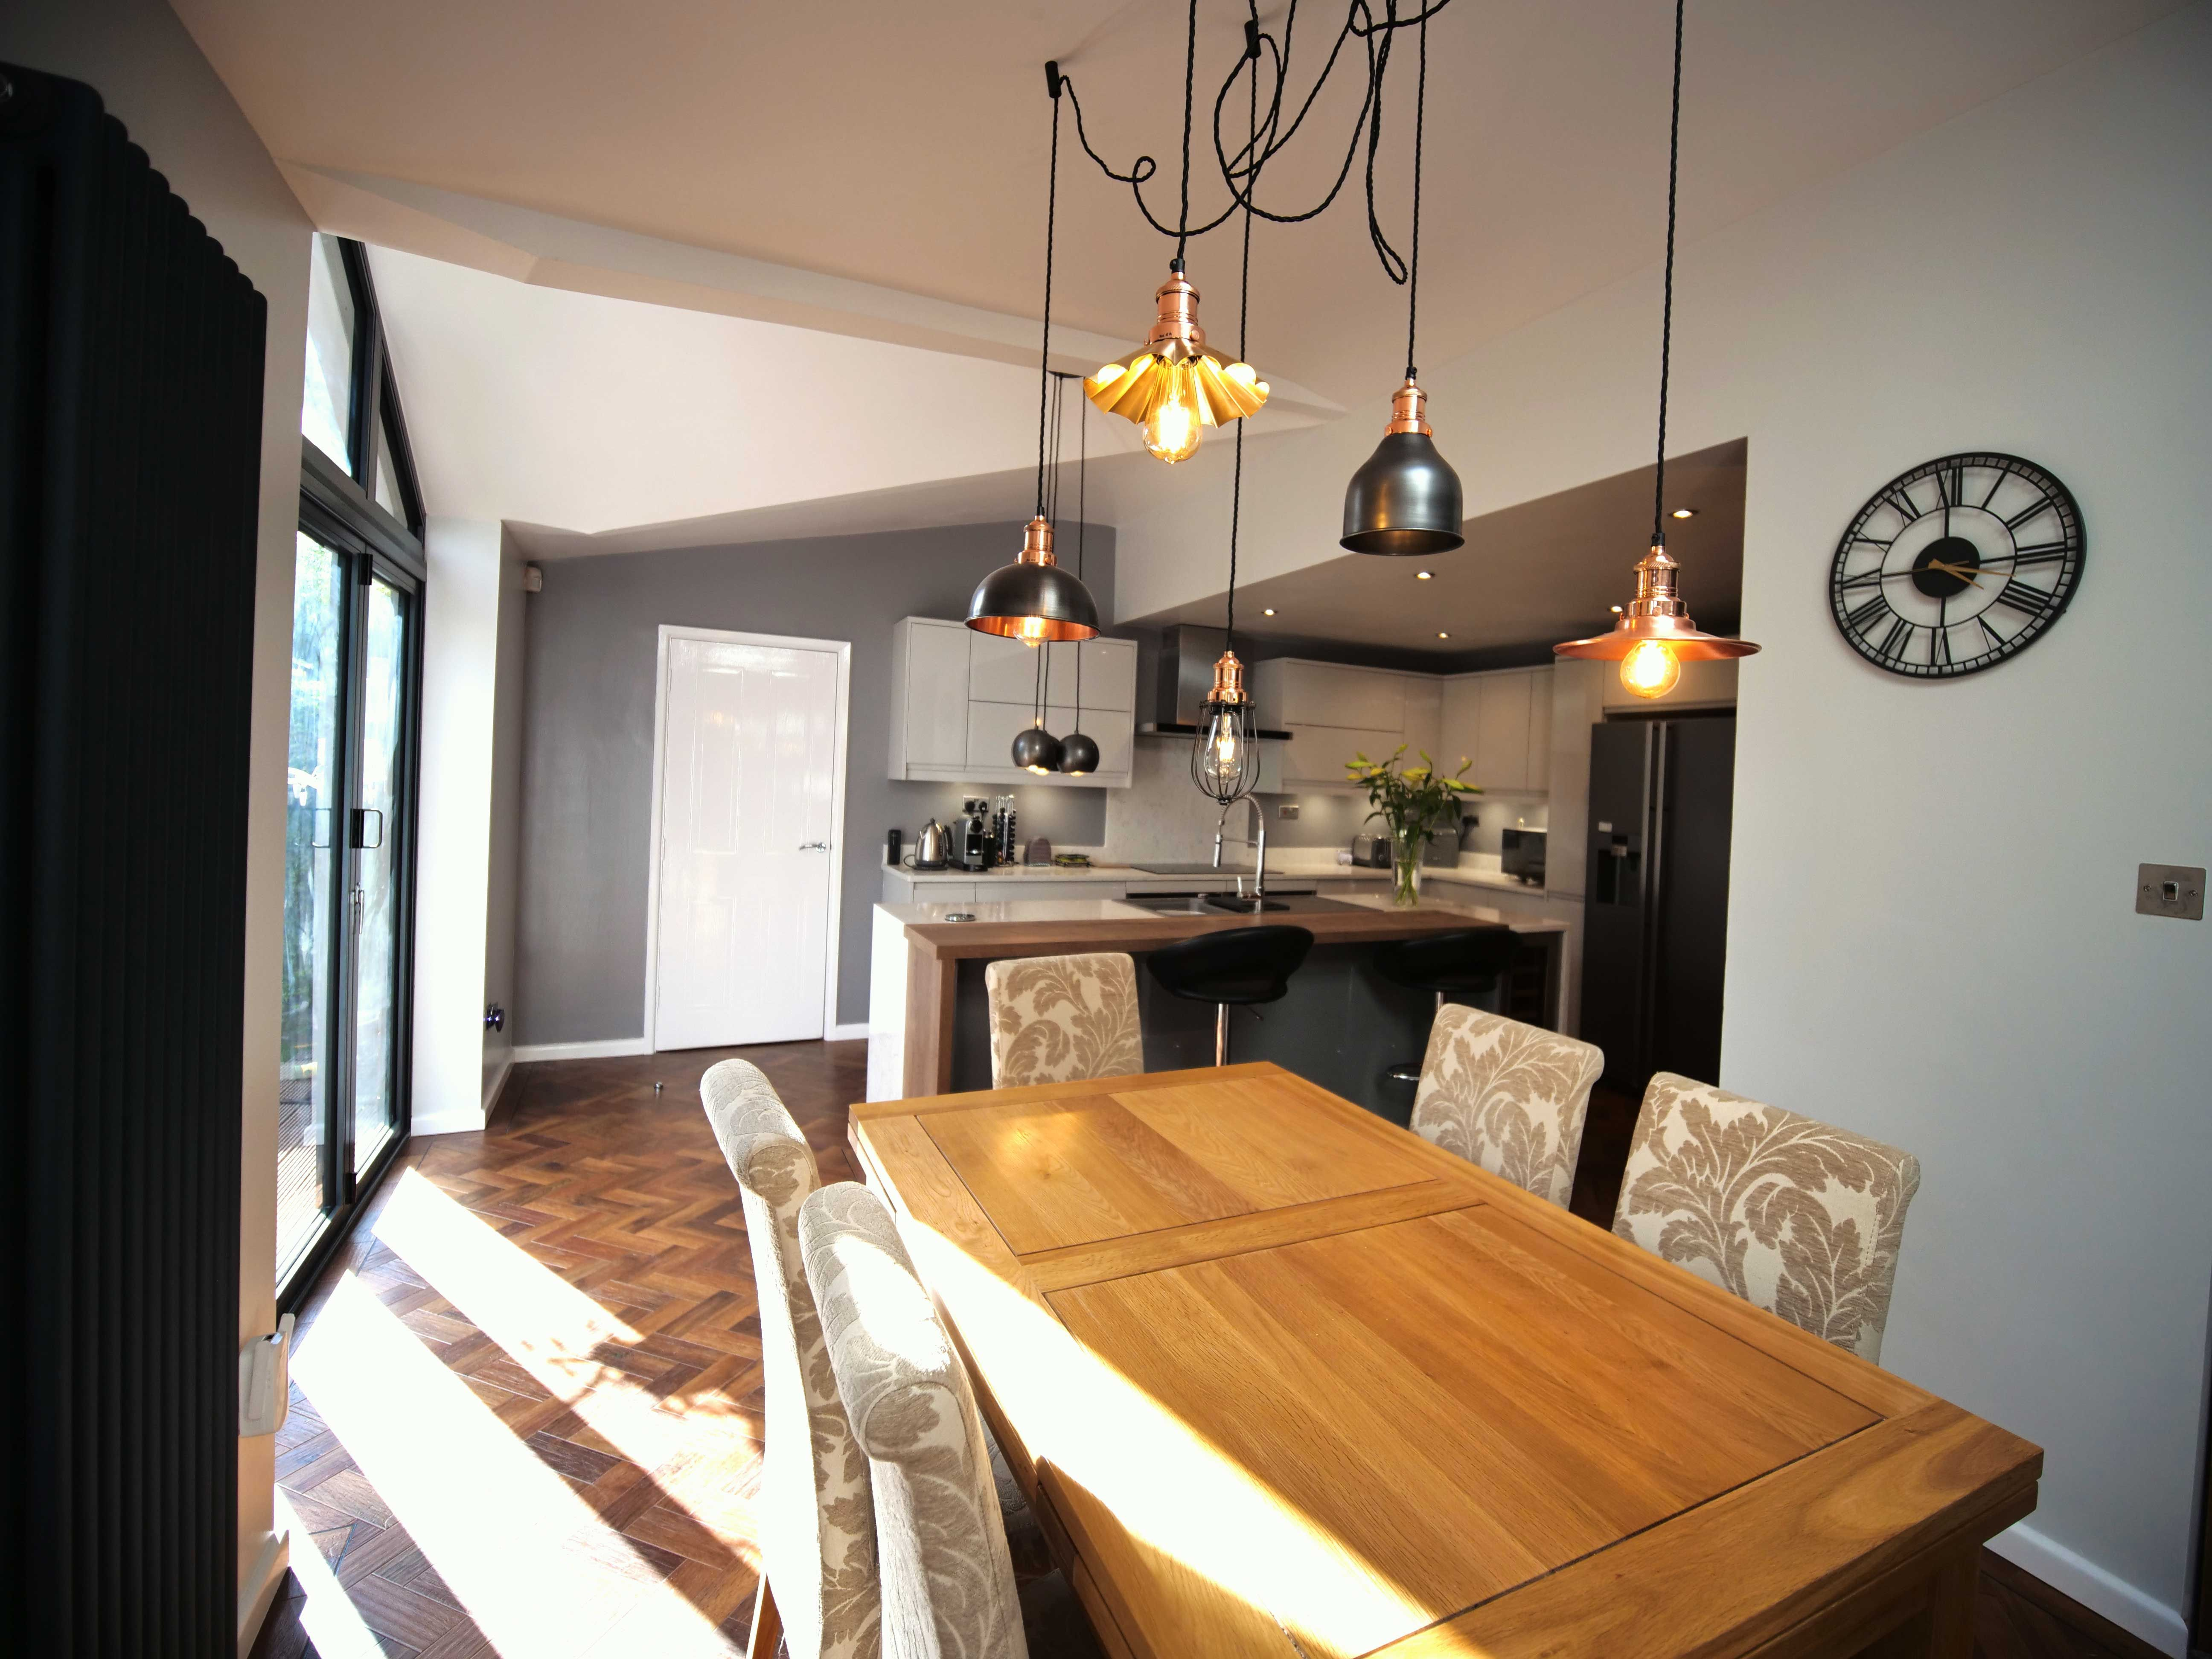 Tobacco oak breakfast bar on a central island (With images